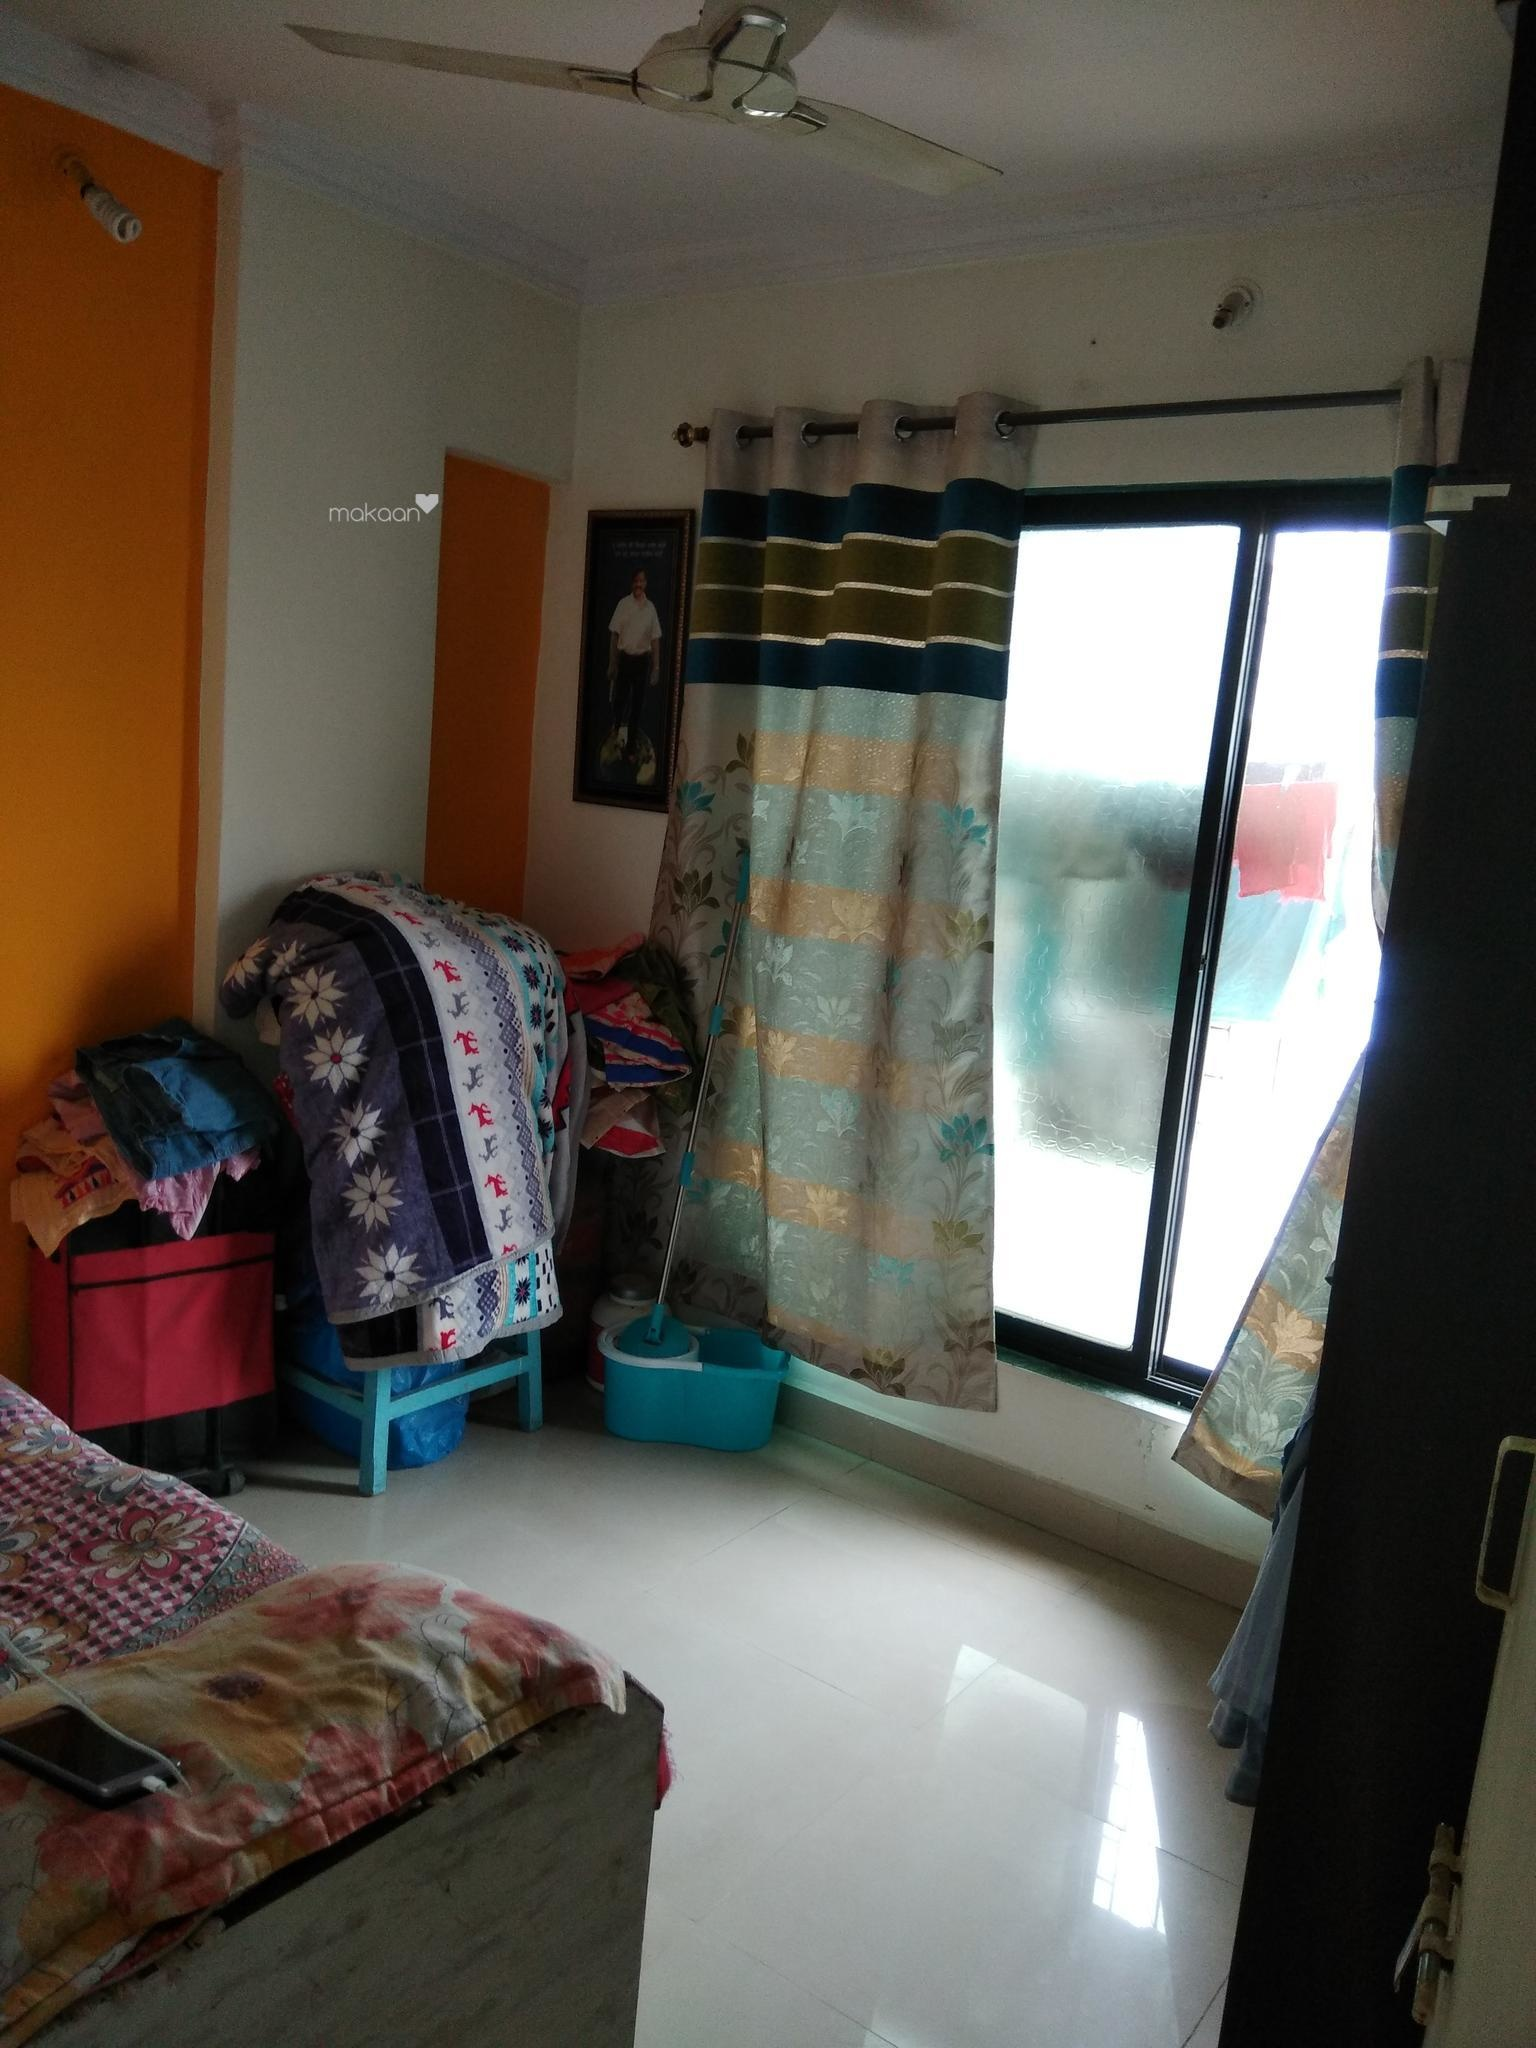 810 sq ft 2BHK 2BHK+2T (810 sq ft) Property By Shree Real Estate In ankur recidency, Ghansoli